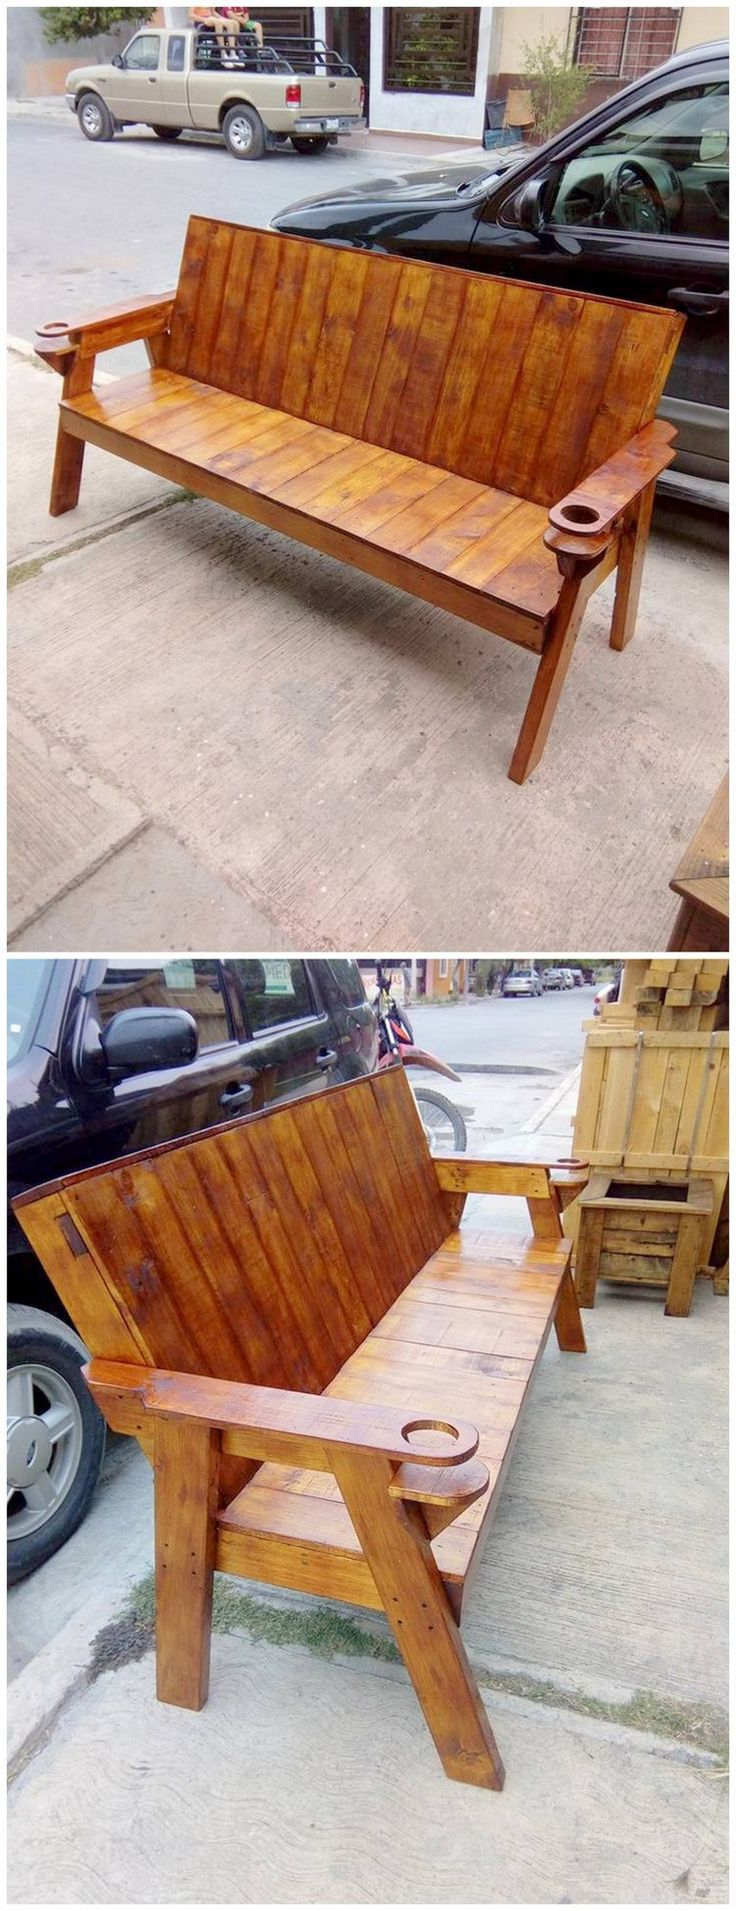 Check out this outstanding wood pallet bench